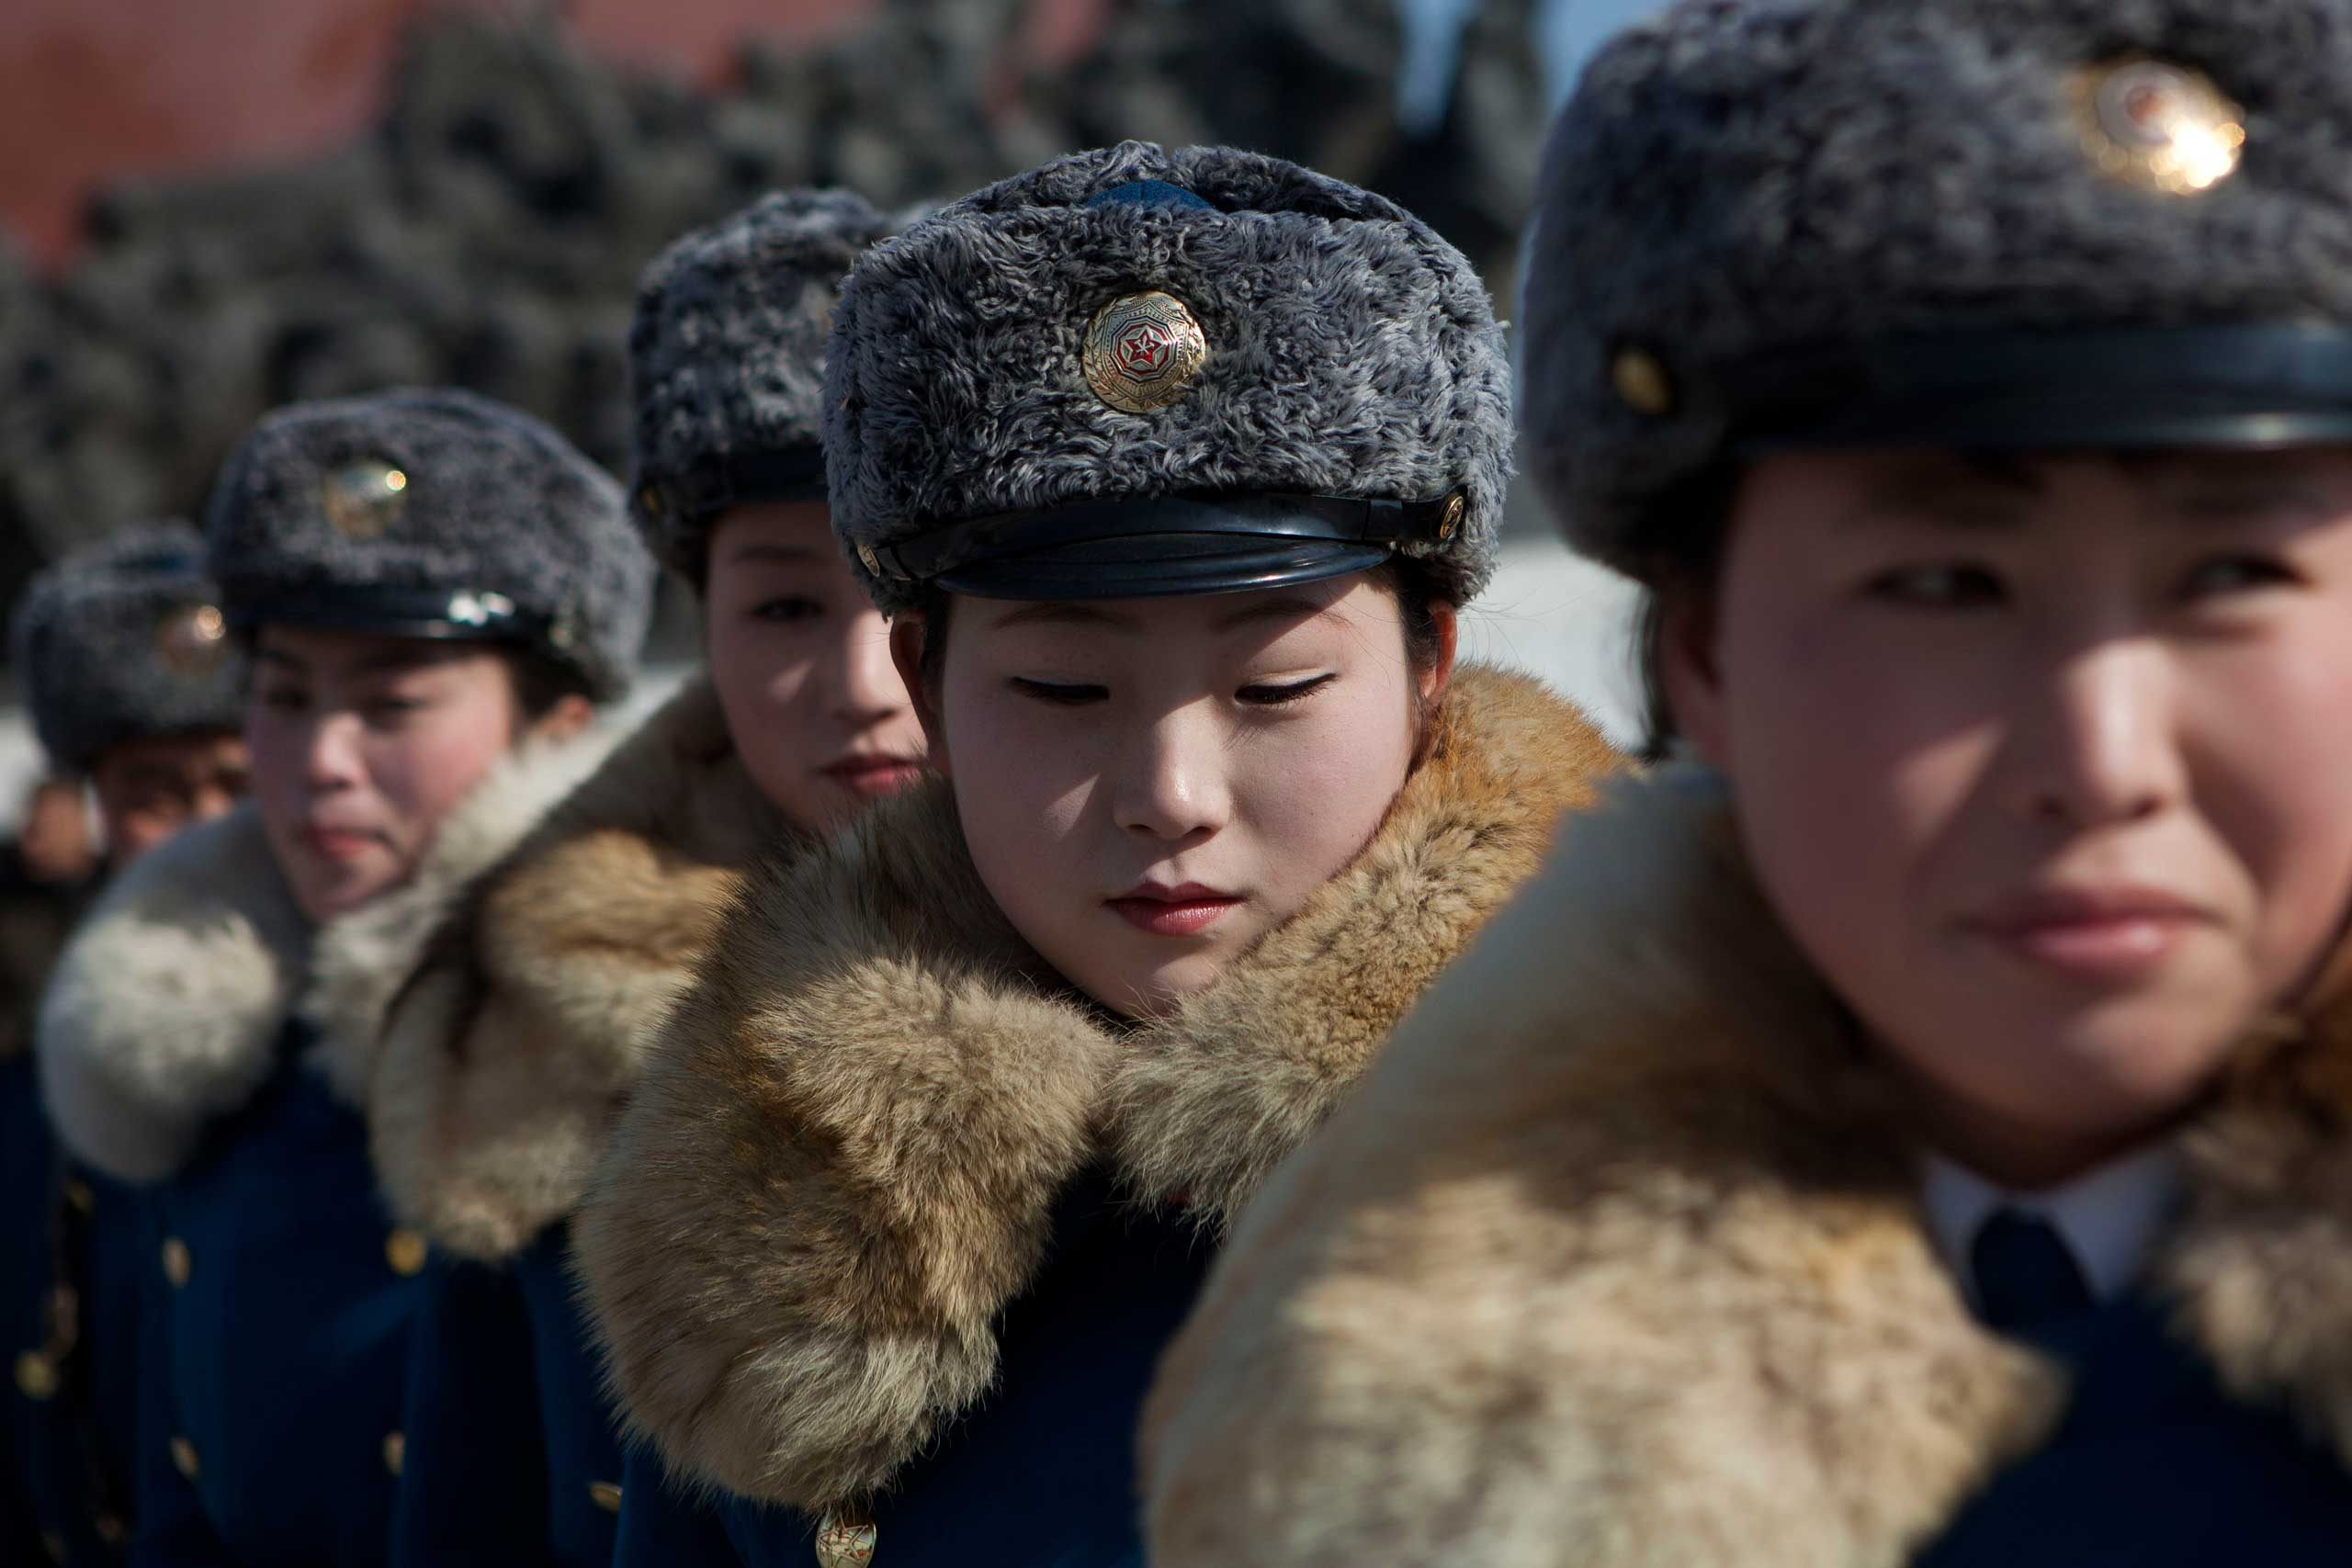 Feb. 16, 2013. Female North Korean traffic police officers gather in front of bronze statues of the late leaders Kim Il Sung and Kim Jong Il to pay their respects in Pyongyang, North Korea.